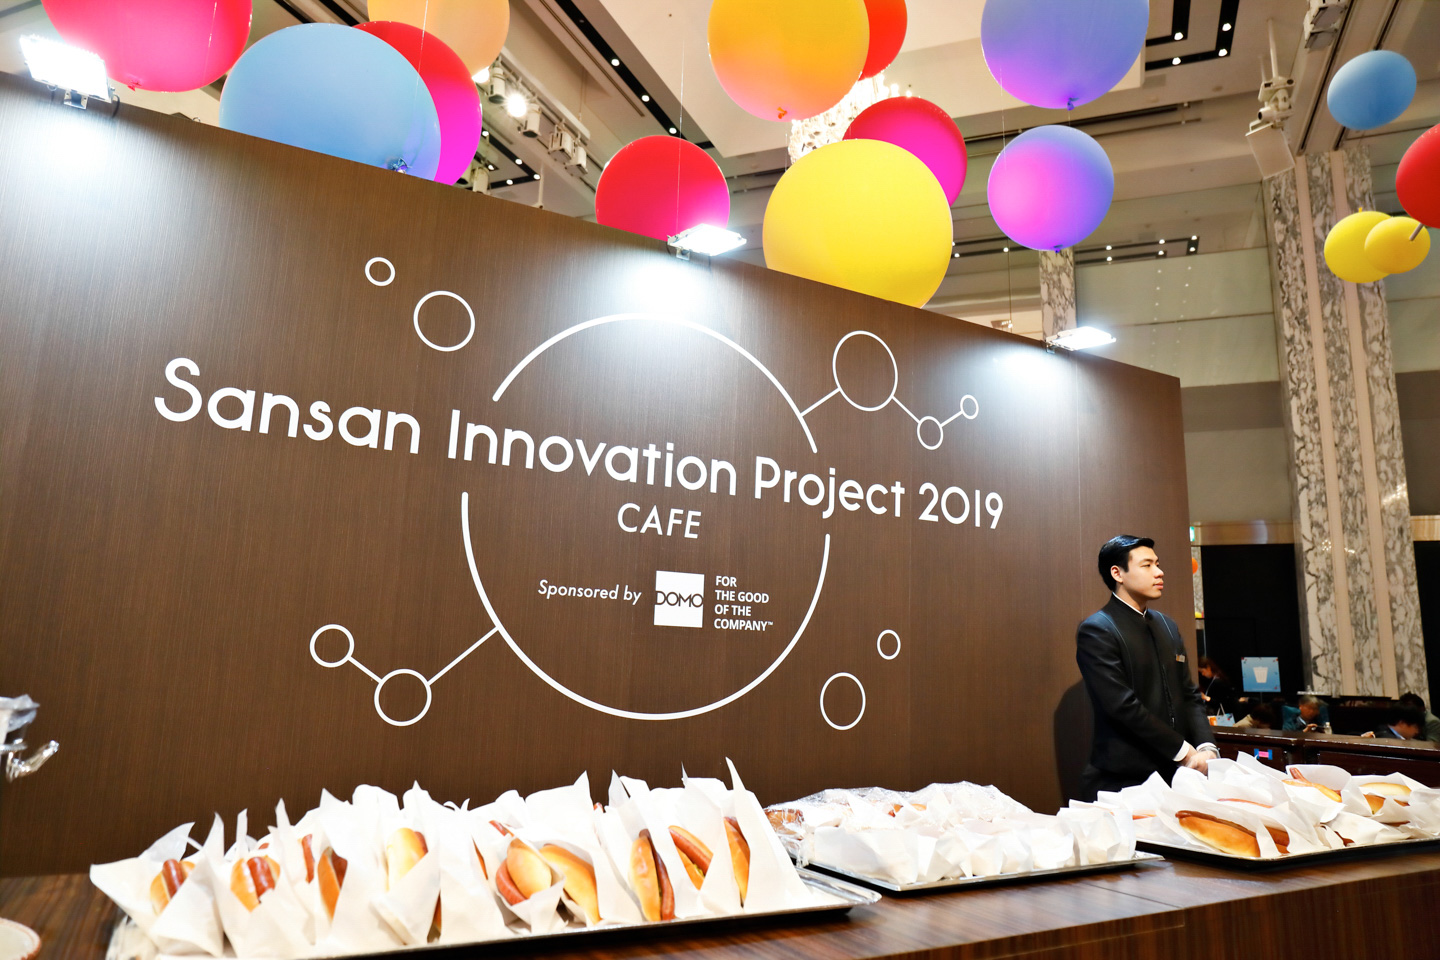 20190315 123048  H3A2391 1440px - 「Sansan Innovation Project 2019」を開催しました